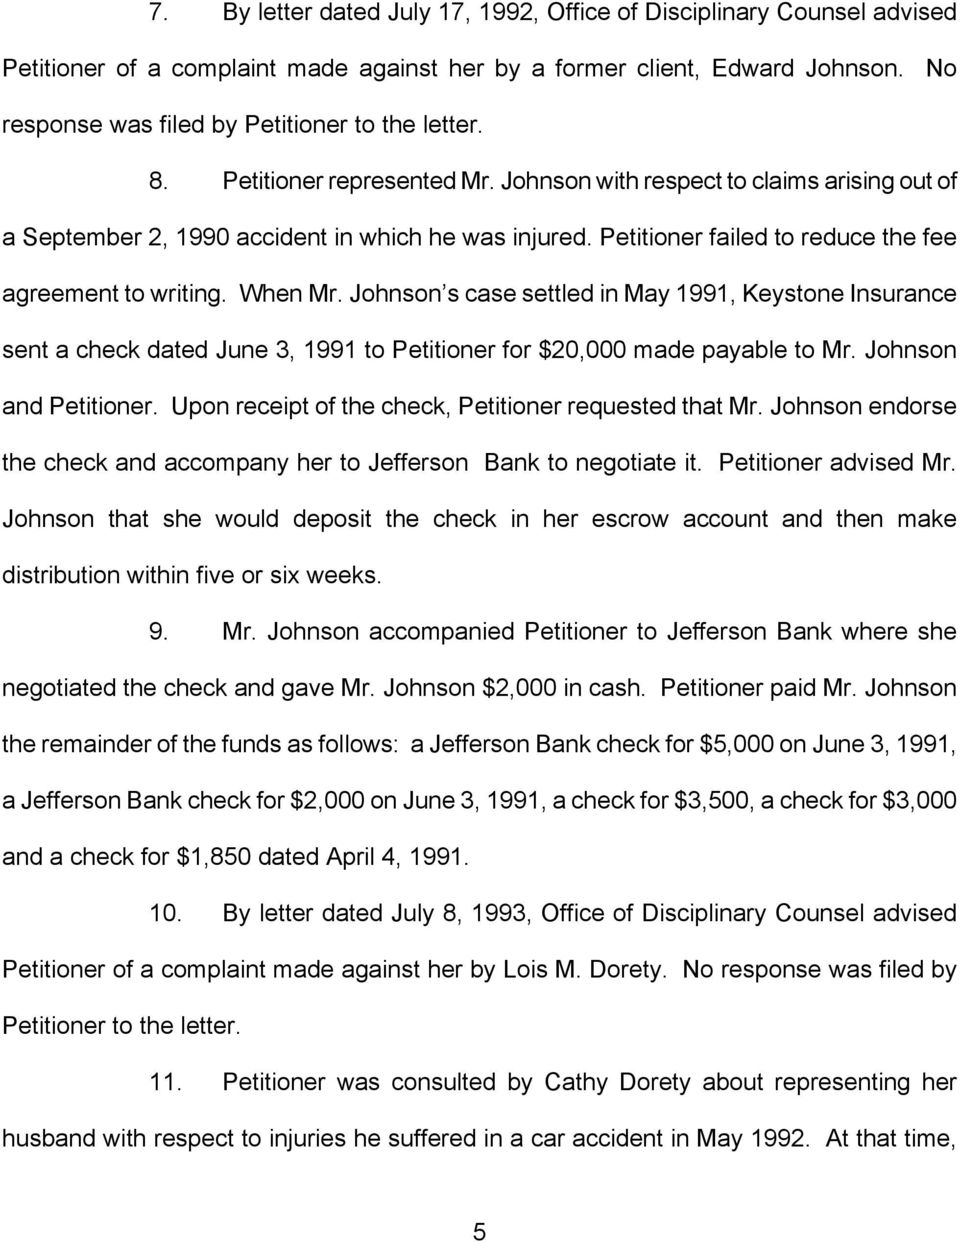 Petitioner failed to reduce the fee agreement to writing. When Mr. Johnson s case settled in May 1991, Keystone Insurance sent a check dated June 3, 1991 to Petitioner for $20,000 made payable to Mr.